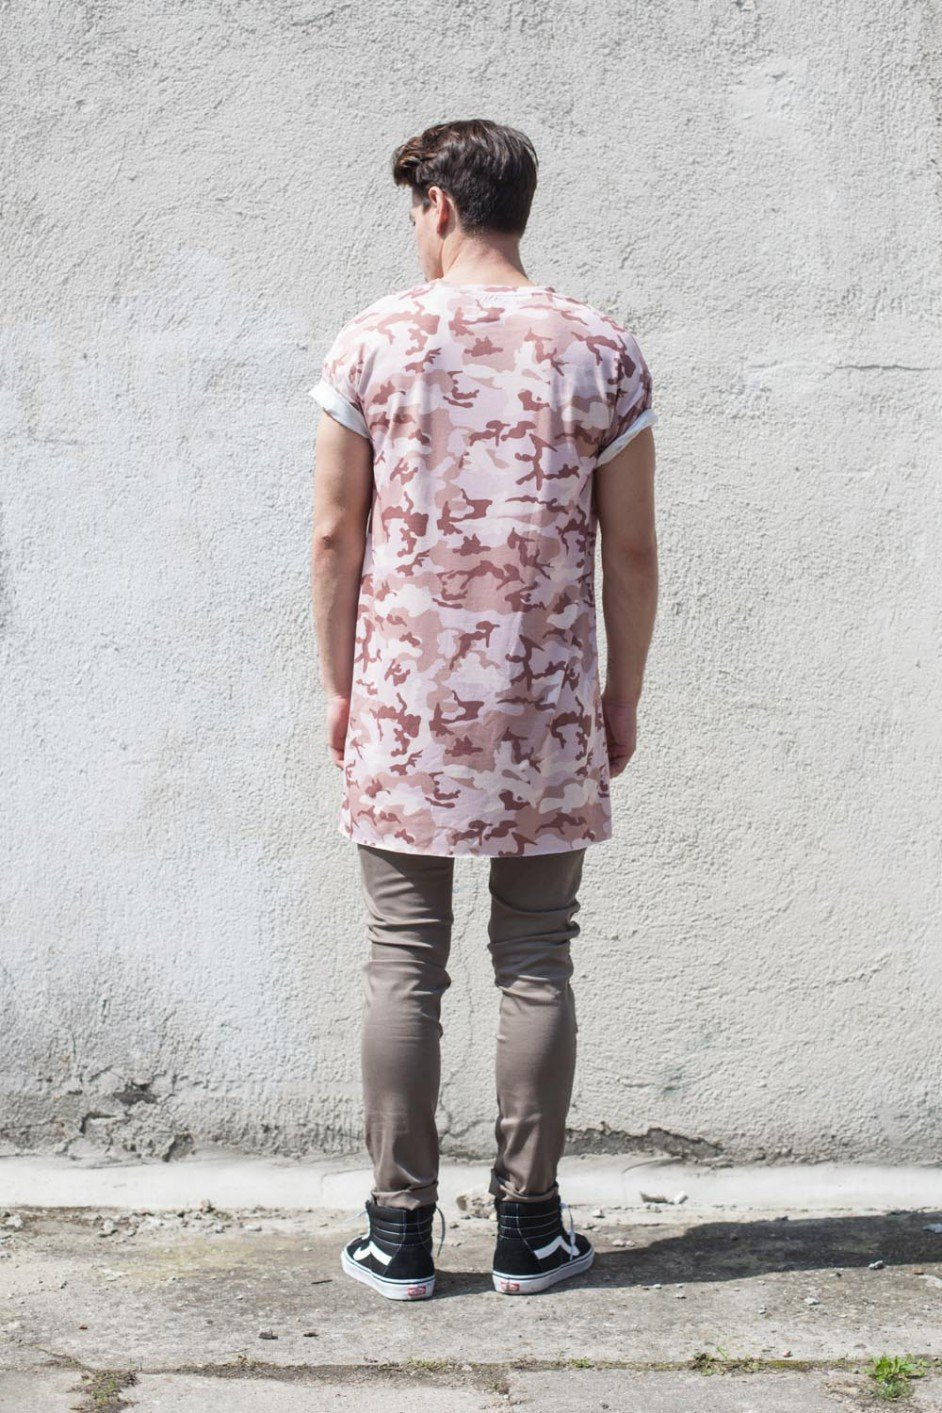 Men's Pink Camo T-Shirt Short Sleeve by Sixt June